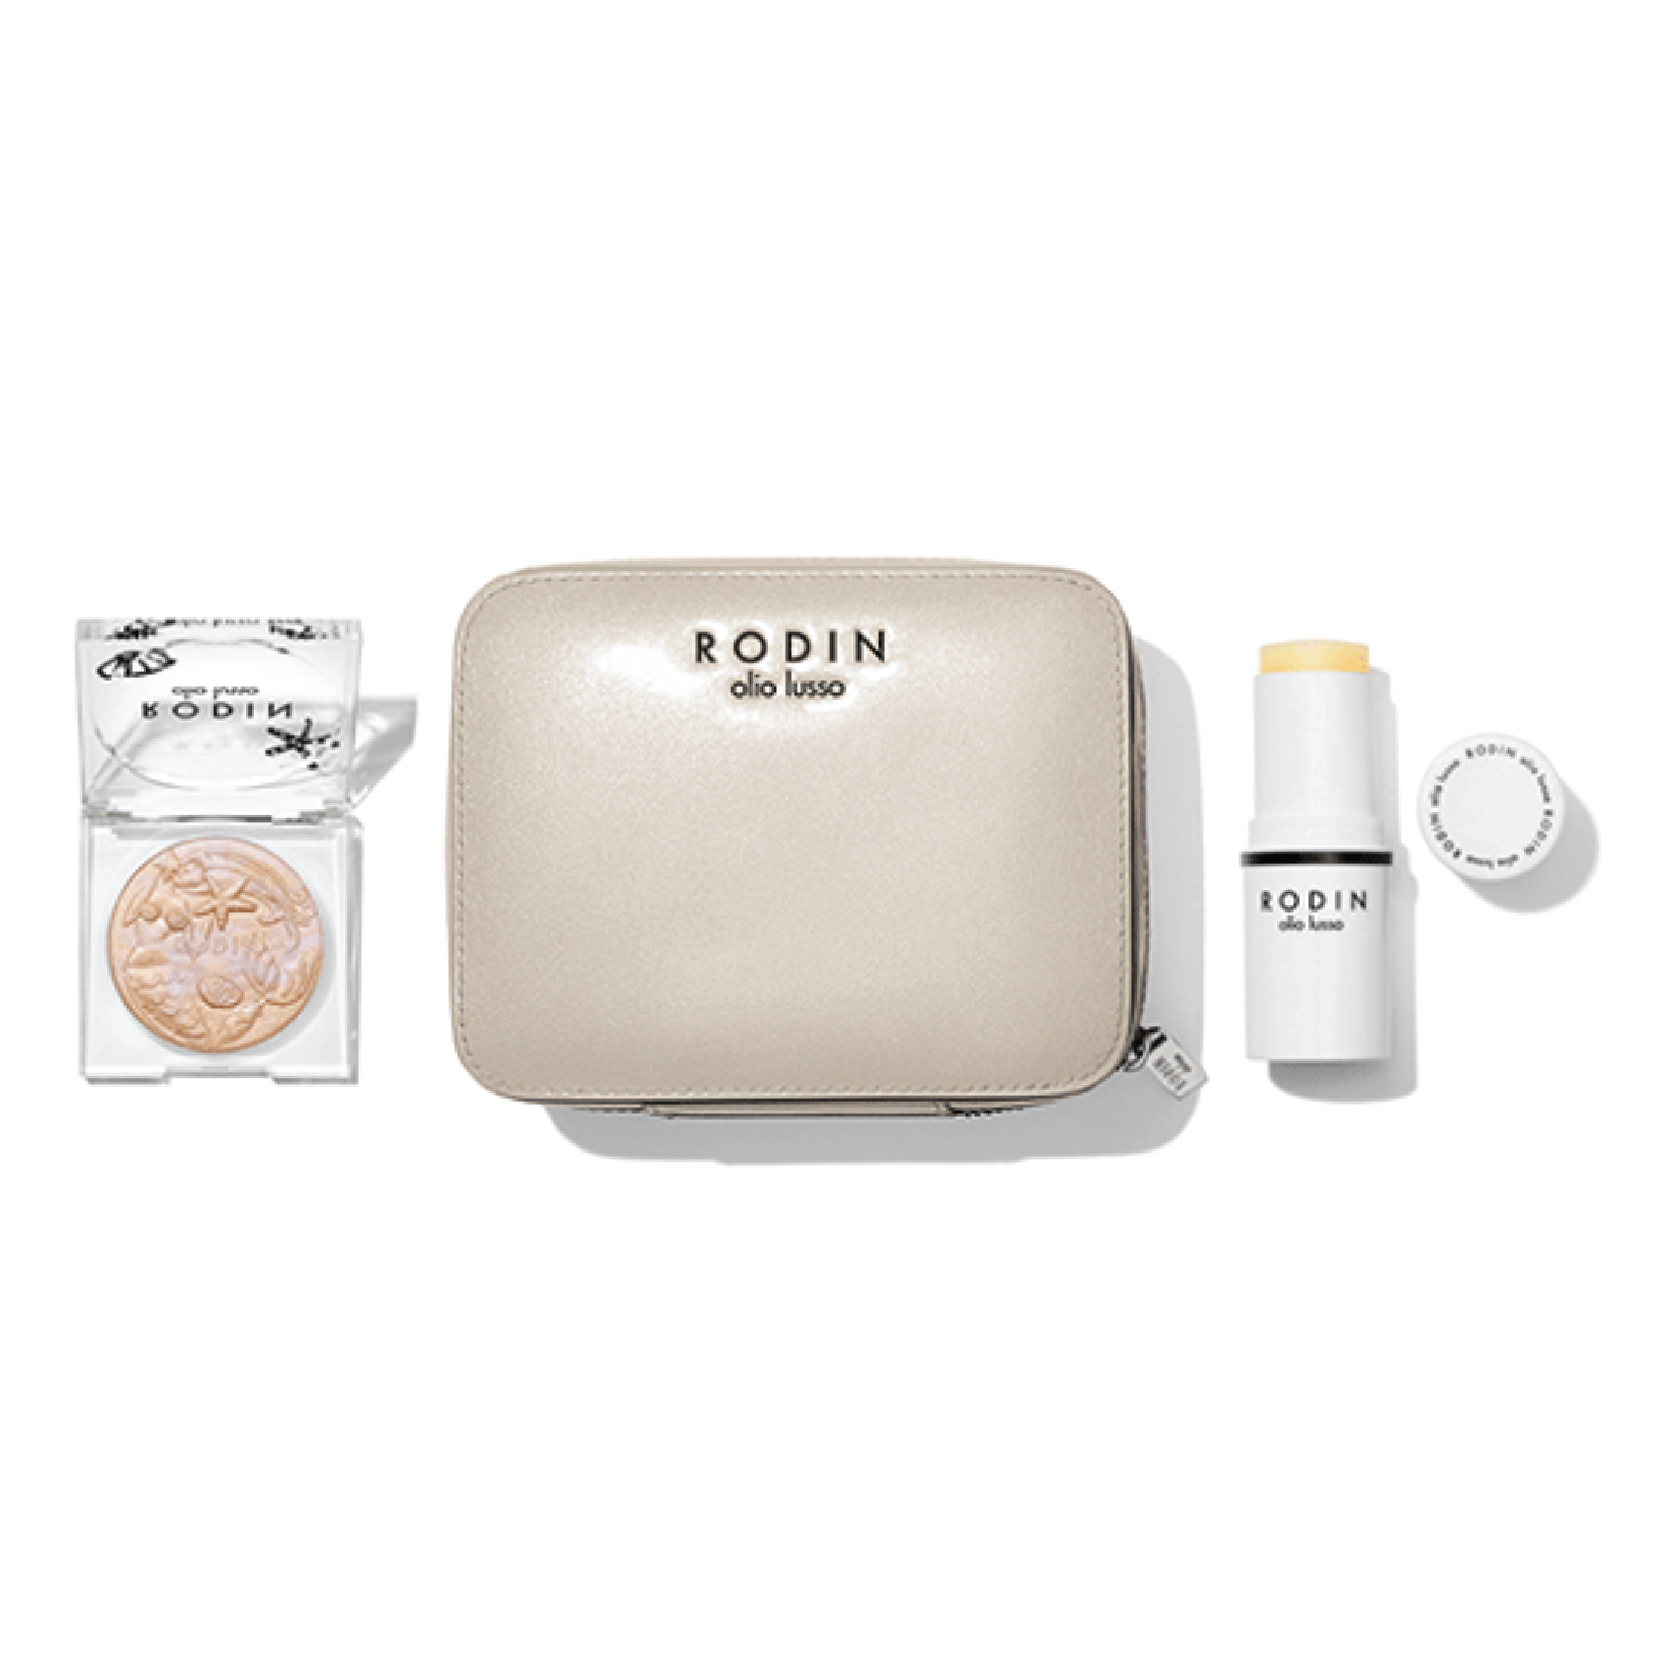 RODIN olio lusso Glow Kit - $110 at RODINRODIN makes the most gorgeous products, from formula to packaging. This gift set has their super popular mermaid illuminating powder and jasmine and neroli face oil stick for someone who loves to always be glowing.